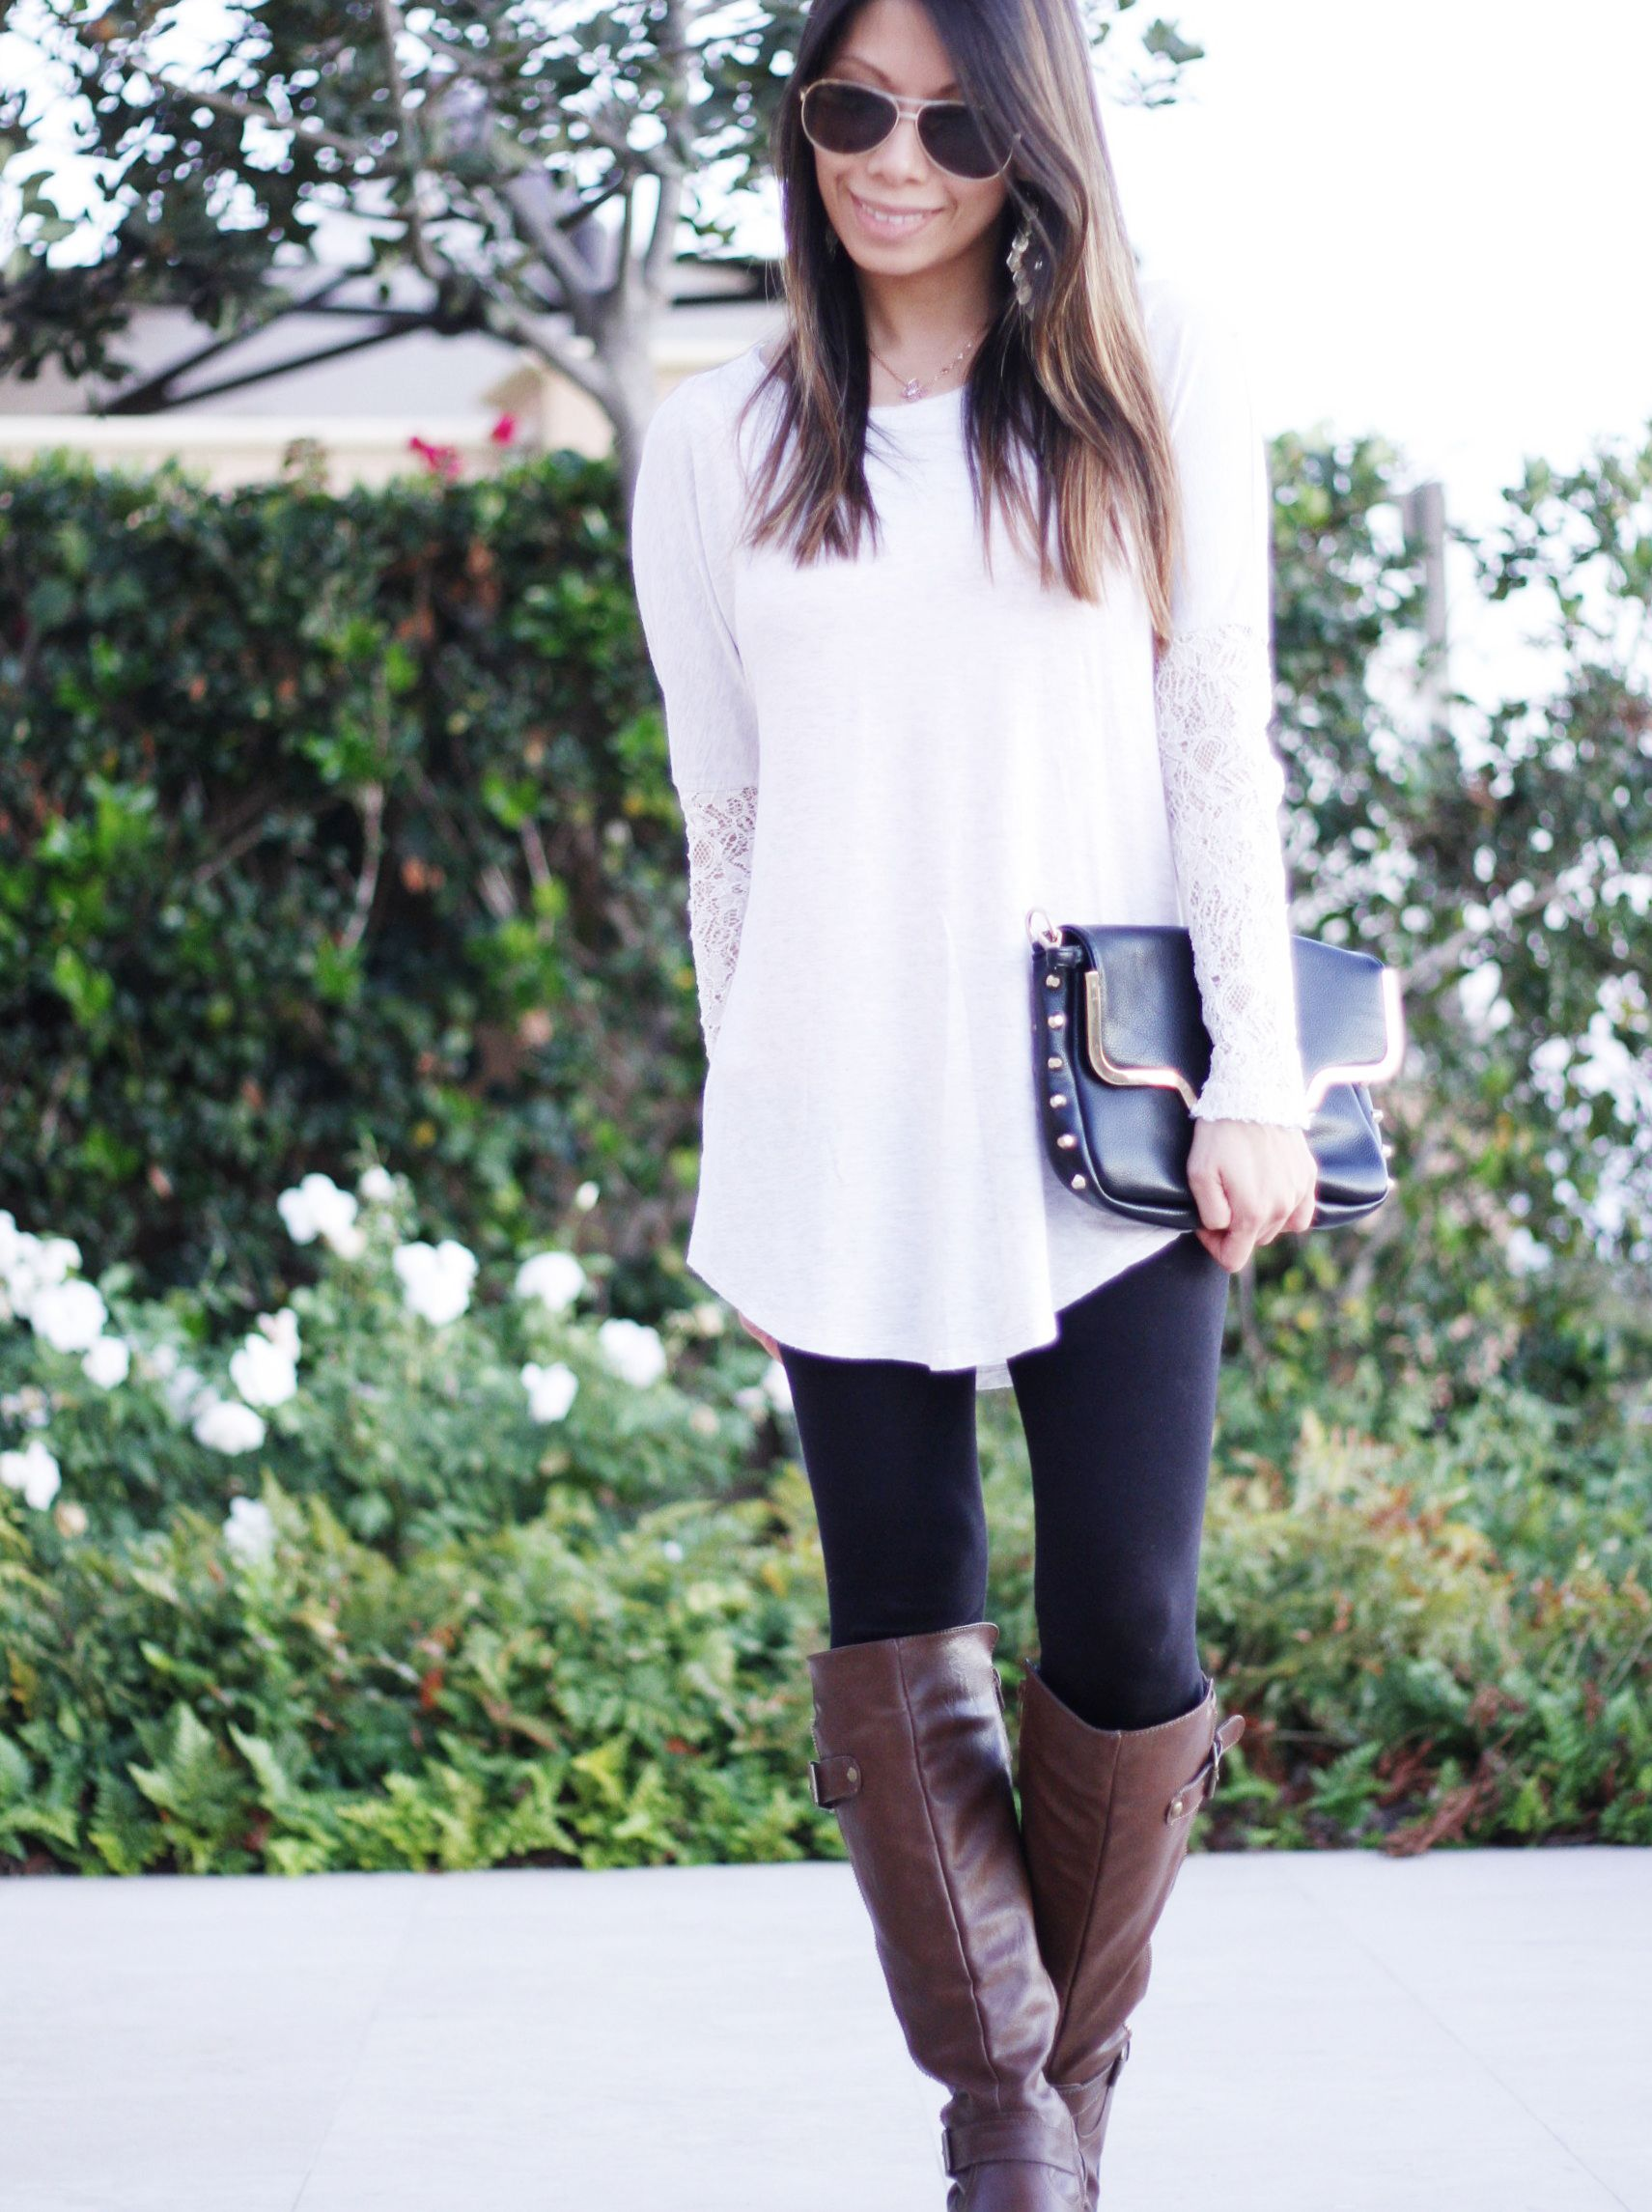 Black and white loose fitting tops forever and lifestyle blog